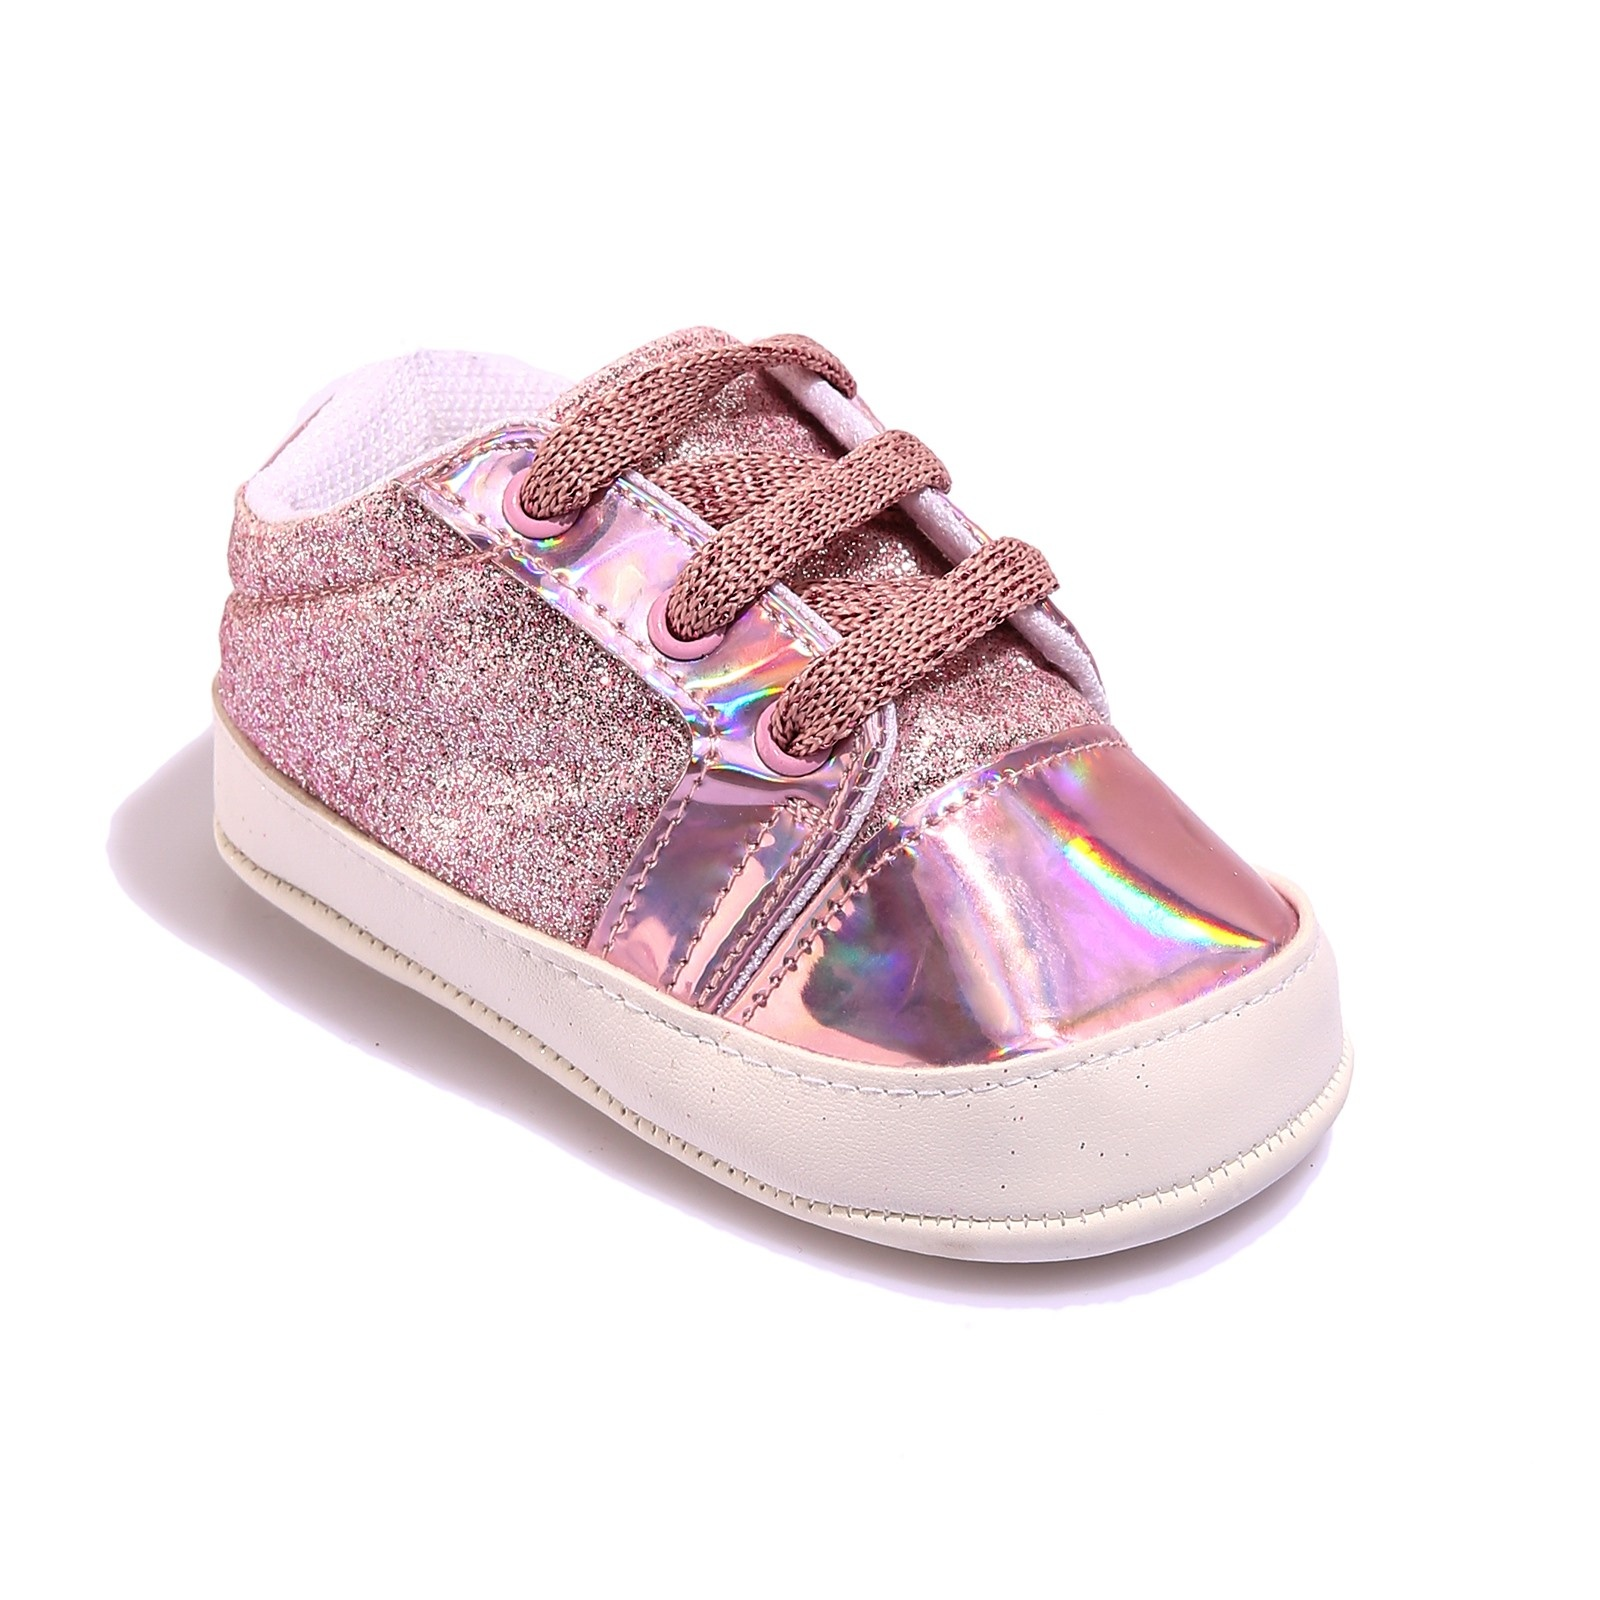 Ebebek Funny Patik Summer Baby Girl Shoes